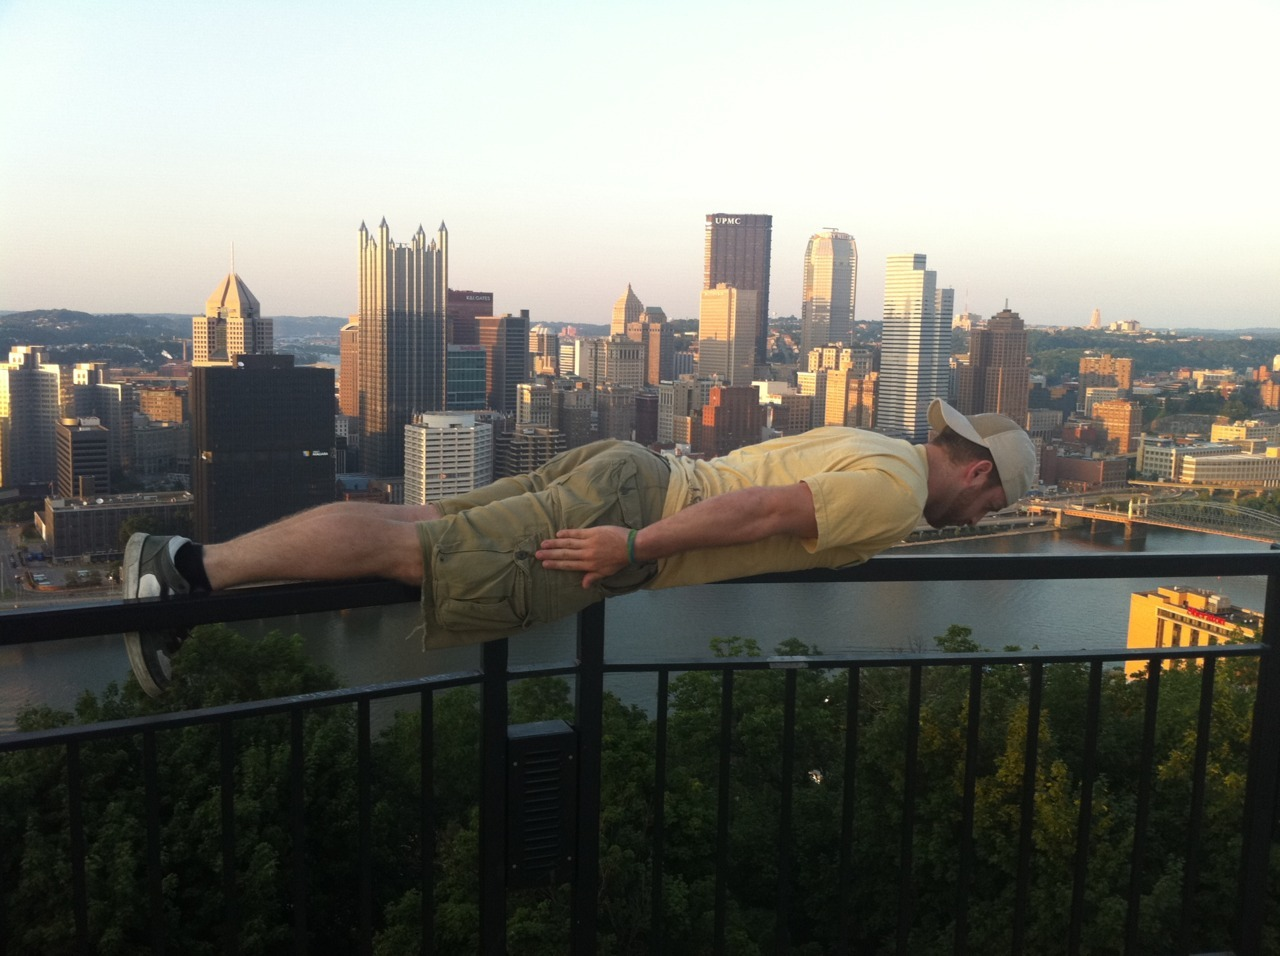 Ryan doing the Overlook Plank on Mt. Washington